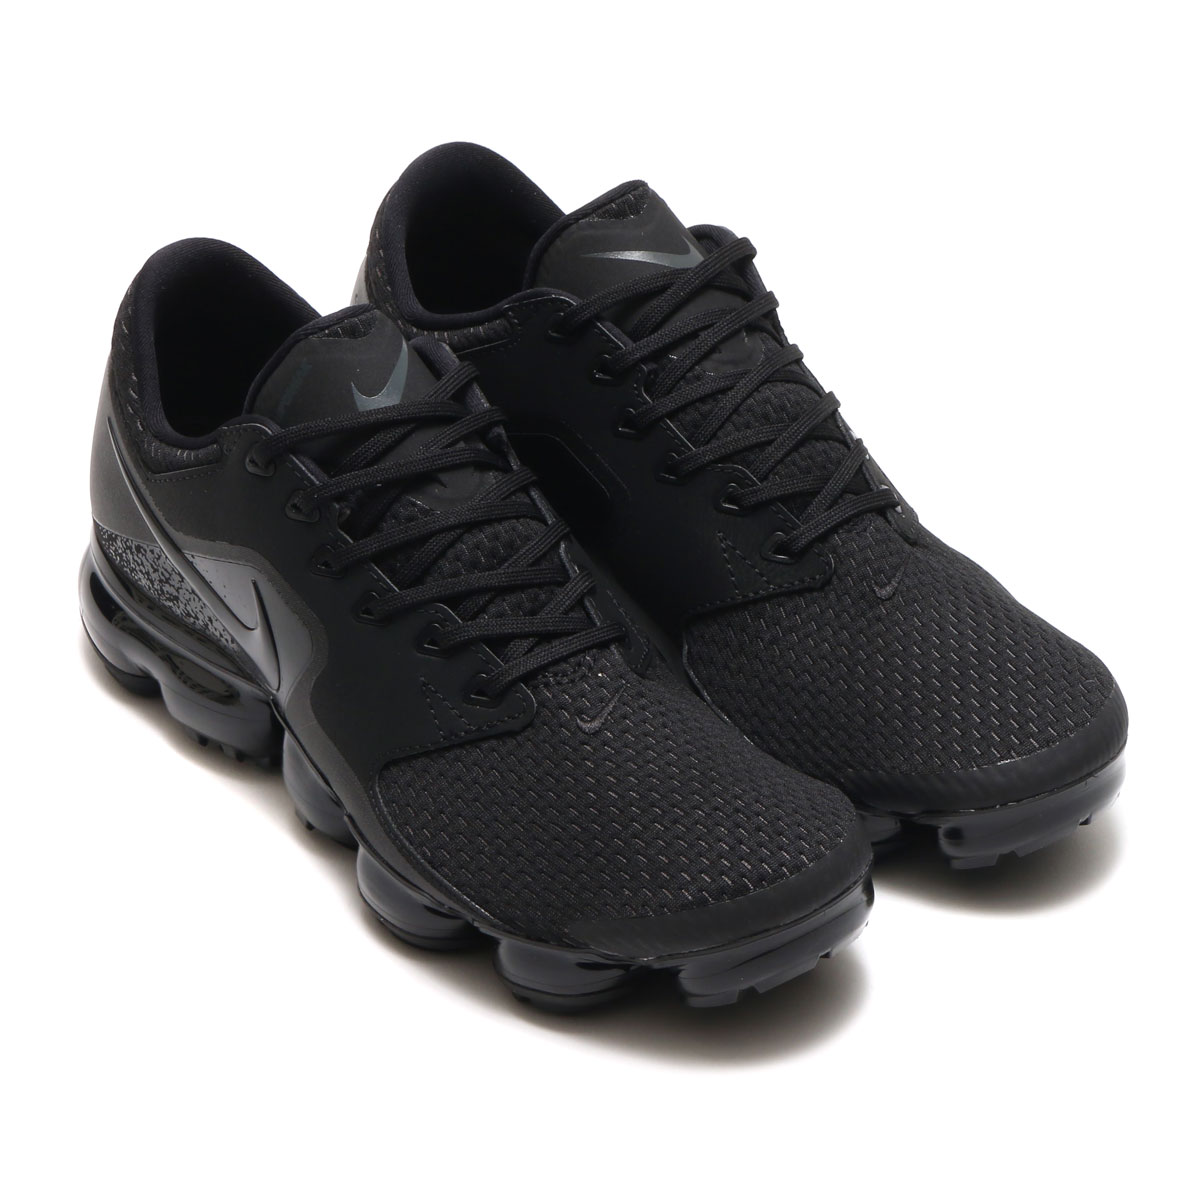 best service 098d8 a0928 Nike Air Vapormax Black Anthracite